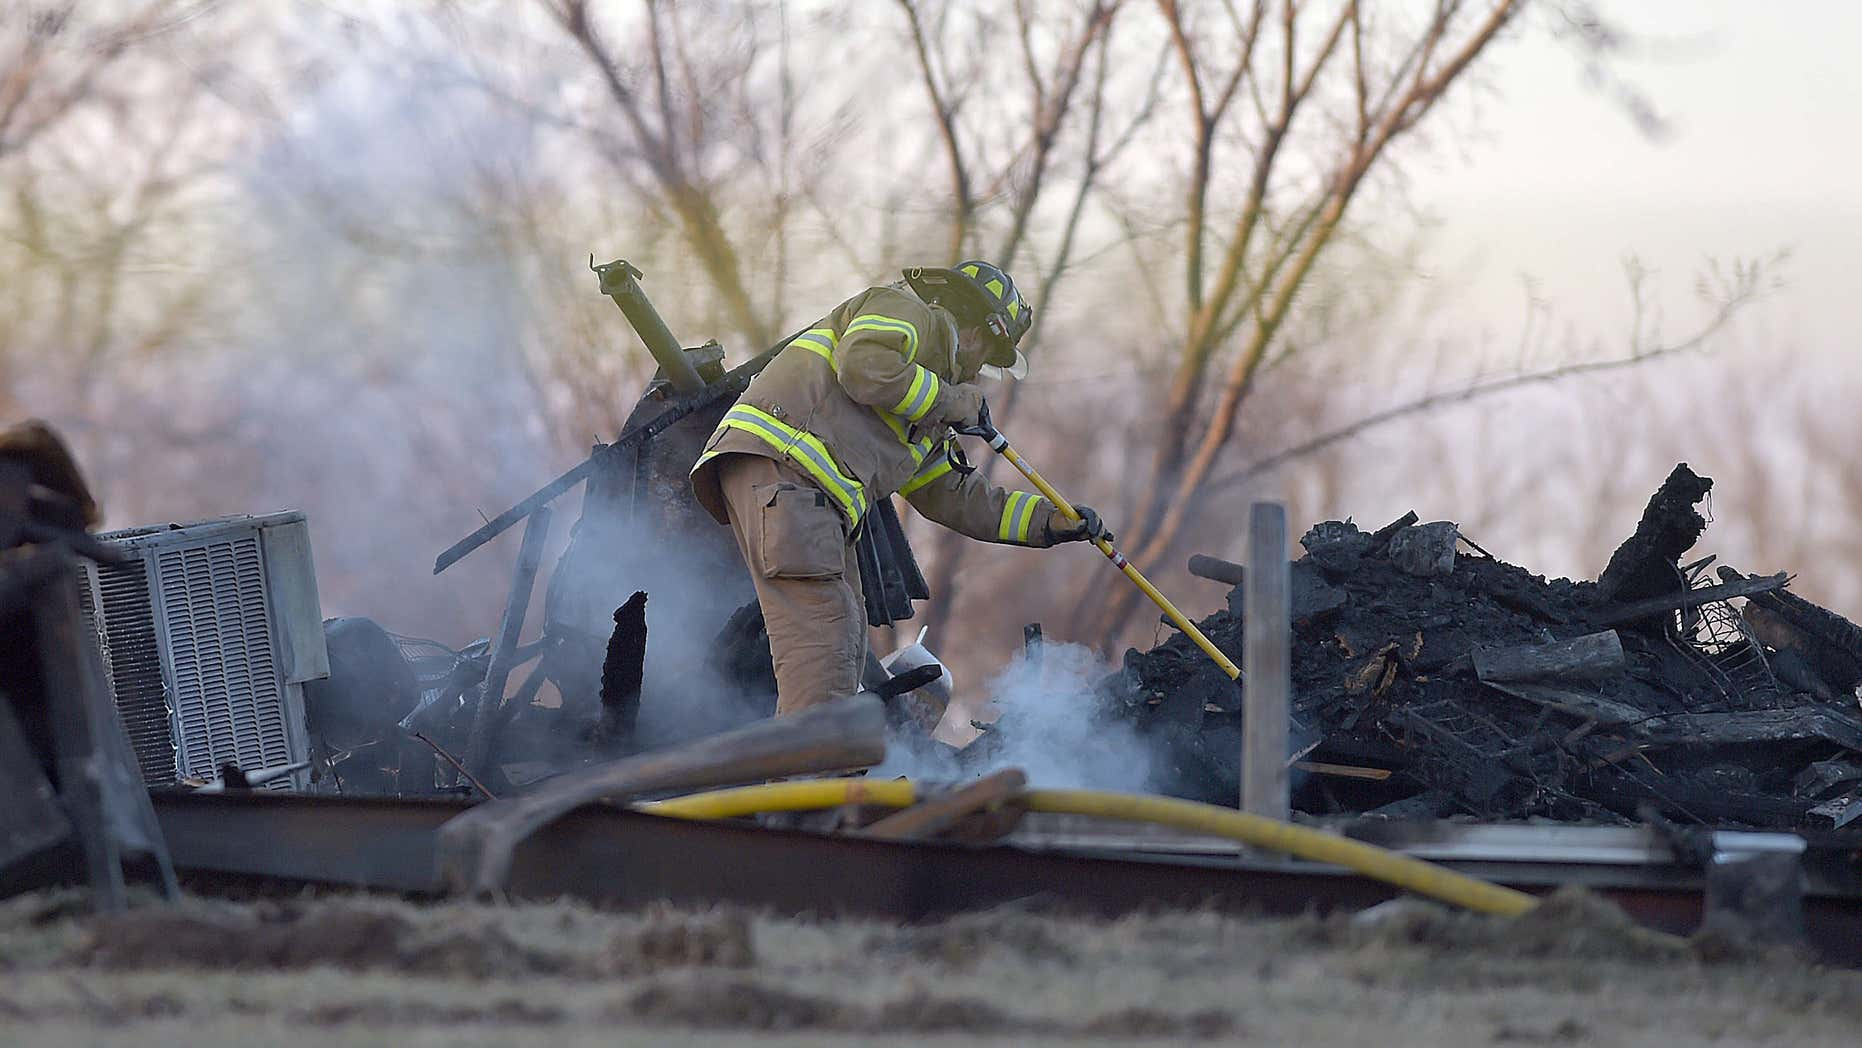 Feb. 20, 2016: A firefighter puts out a hot spot at the home 4170 Buena Vista Road in Edgerton, Mo.